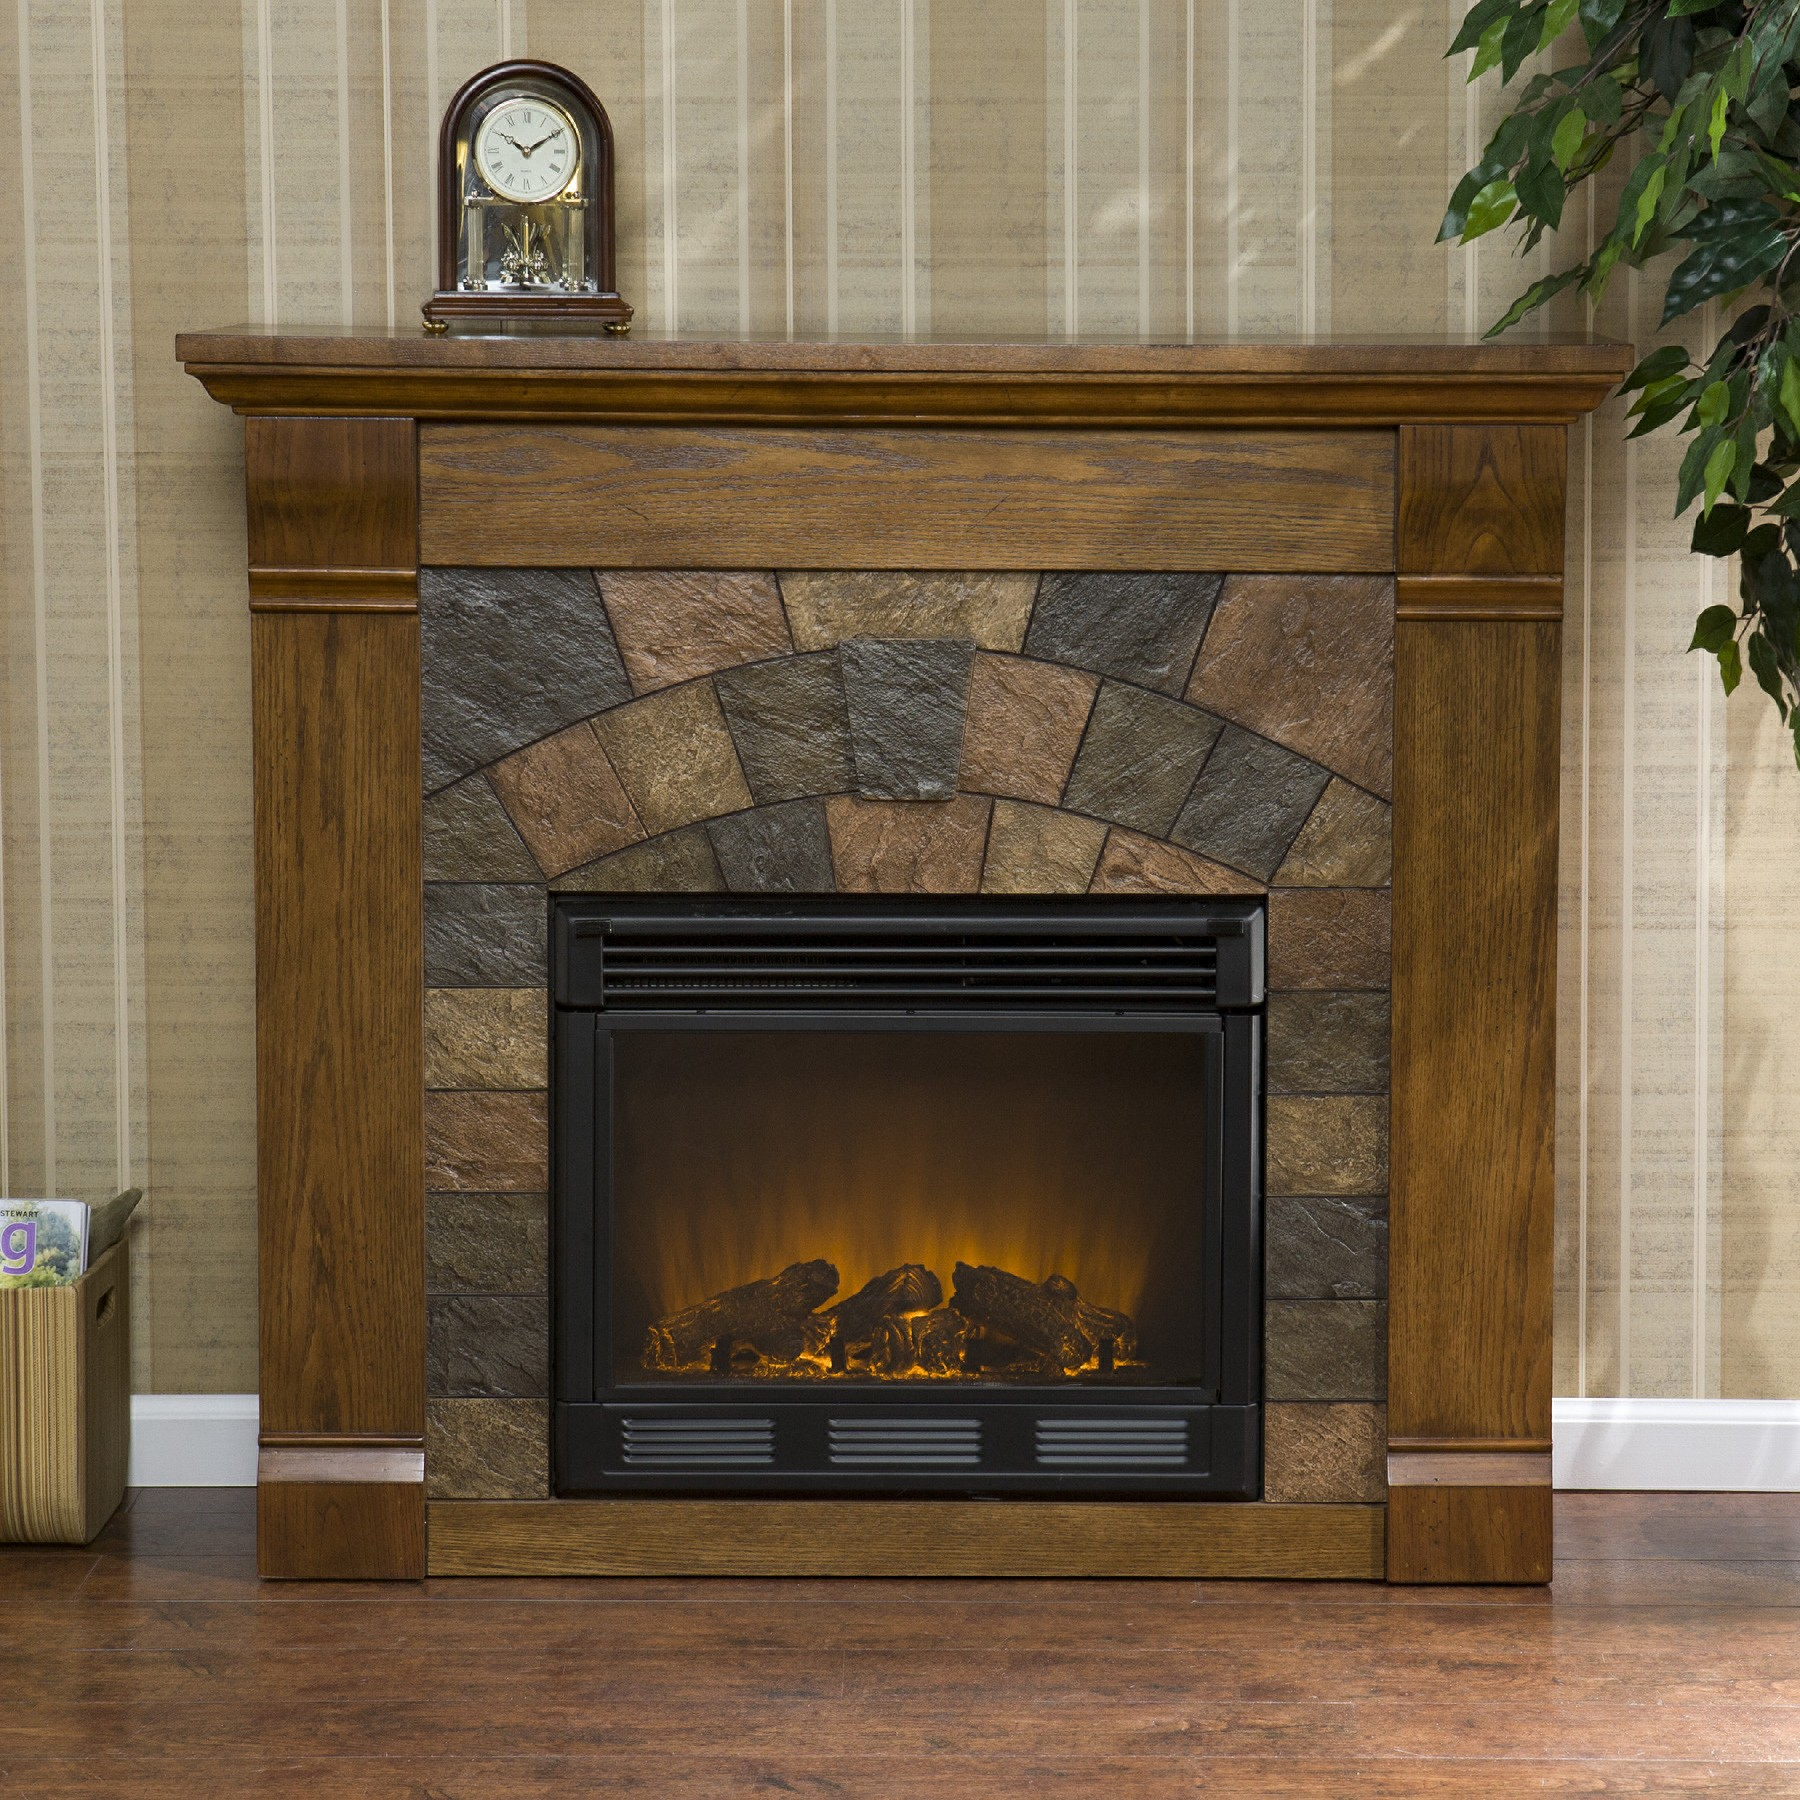 Best Lowes Fireplace Mantel for Warm Up Your Space Room Ideas: Mdf Fireplace Mantel Kits | Where To Buy Fireplace Mantels | Lowes Fireplace Mantel